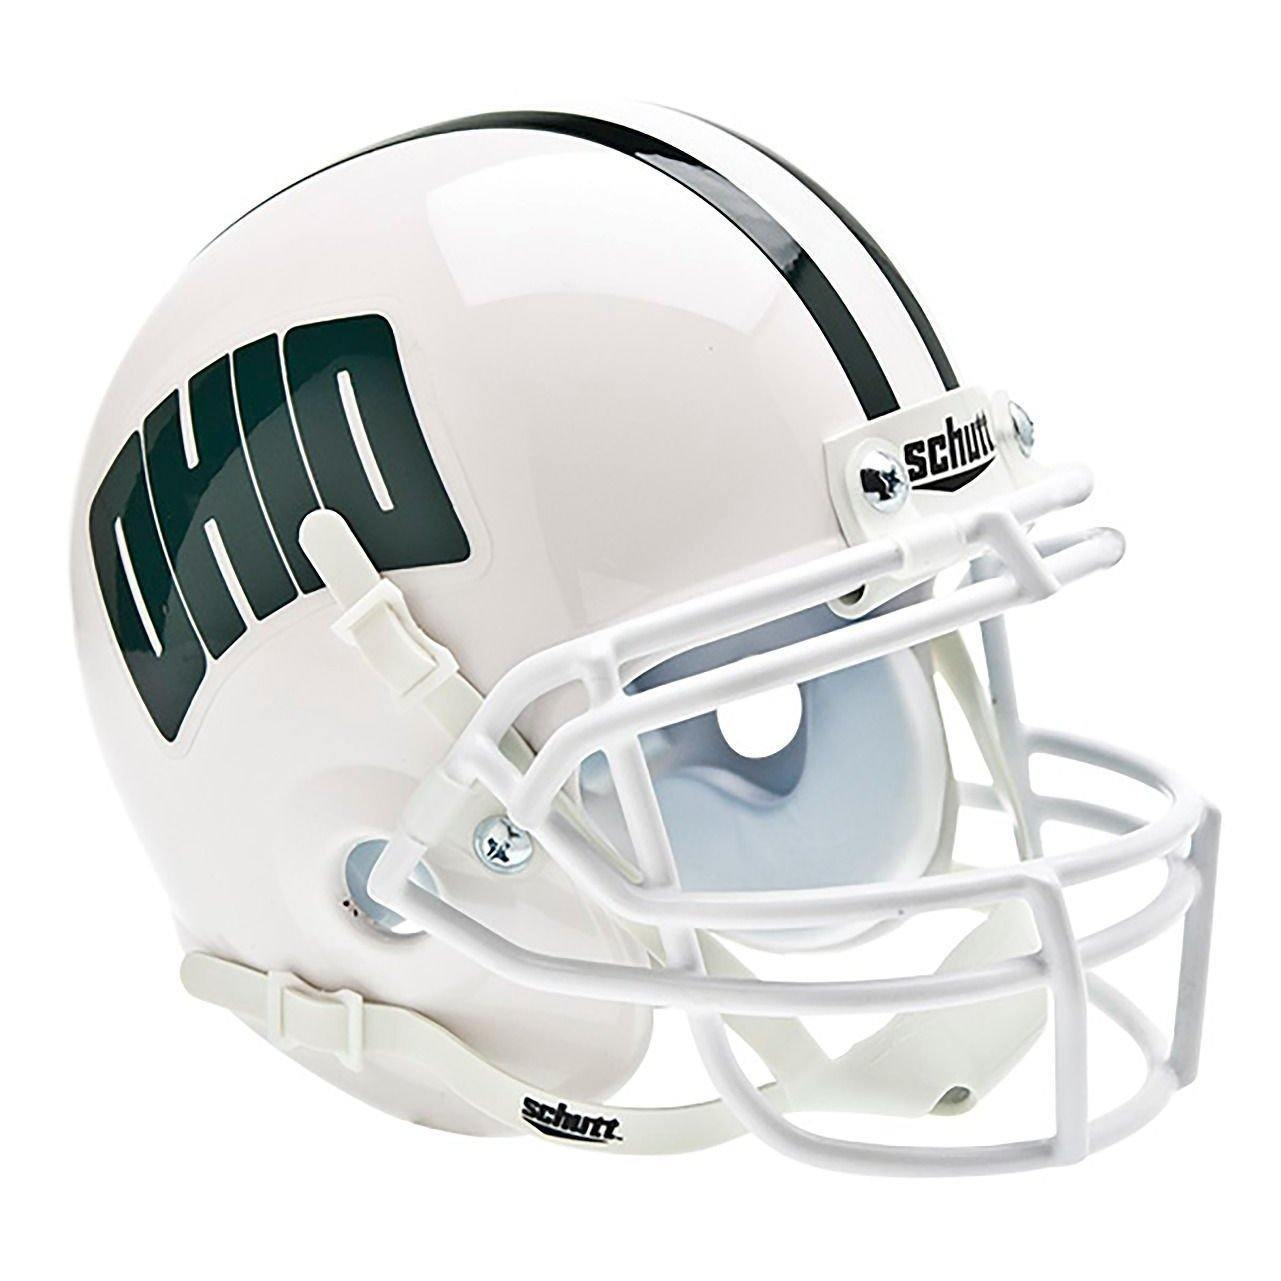 Ohio Bobcats College Football Collectible Schutt Mini Helmet - Picture Inside - FANZ Collectibles - Fanz Collectibles